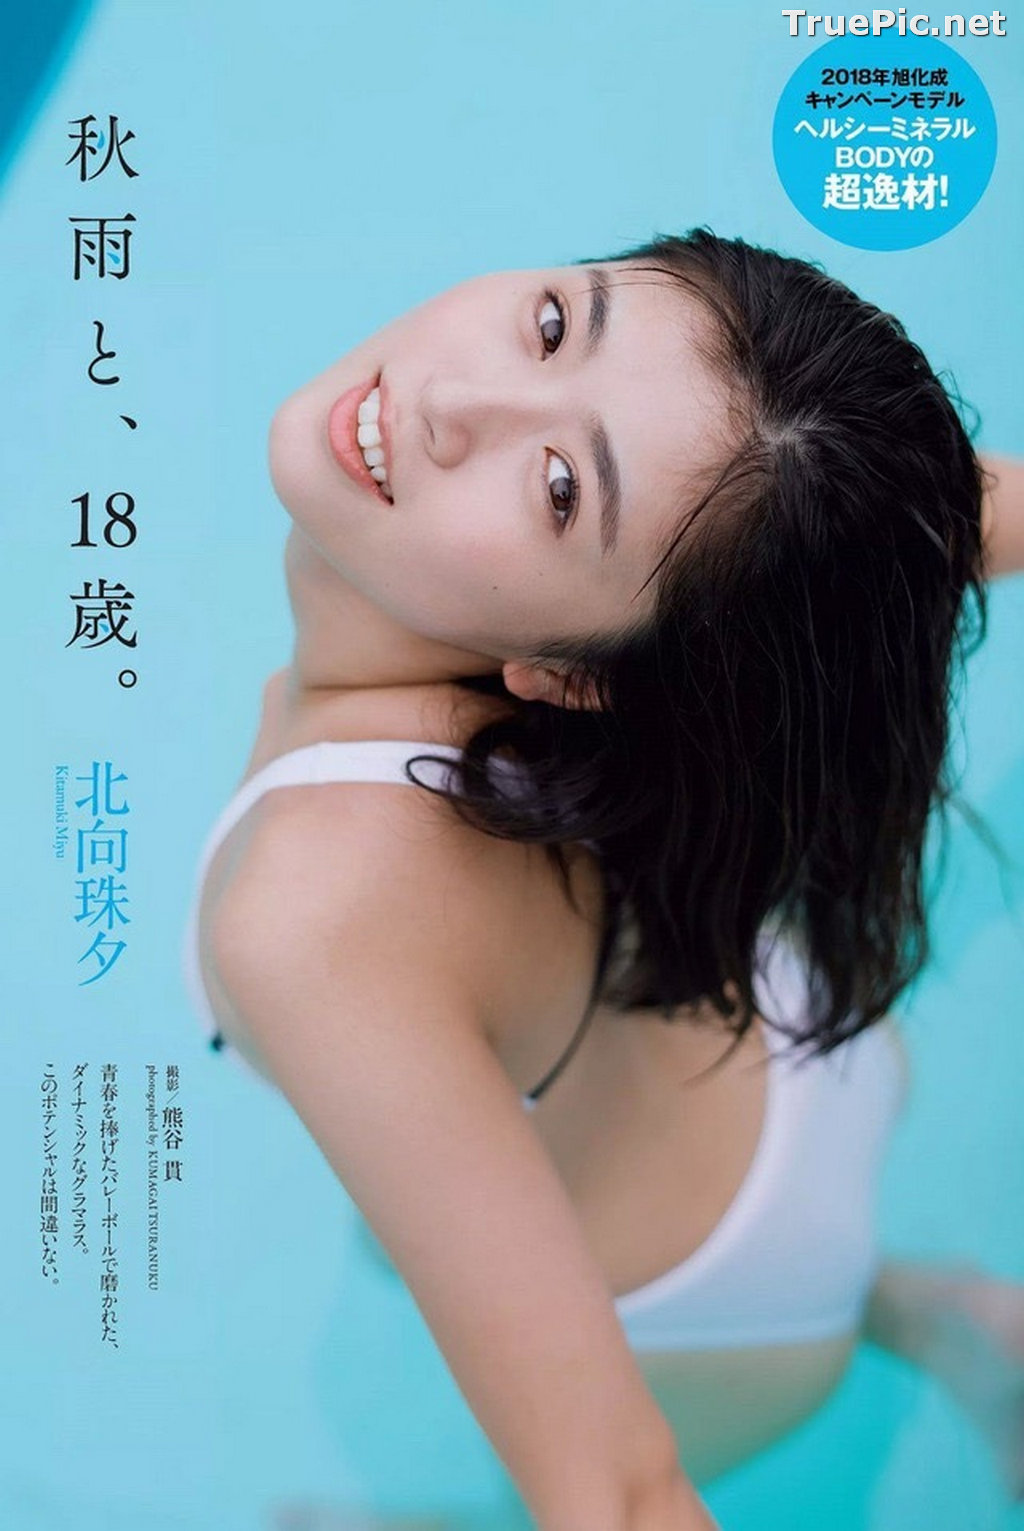 ImageJapanese Gravure Idol and Actress - Kitamuki Miyu (北向珠夕) - Sexy Picture Collection 2020 - TruePic.net - Picture-1